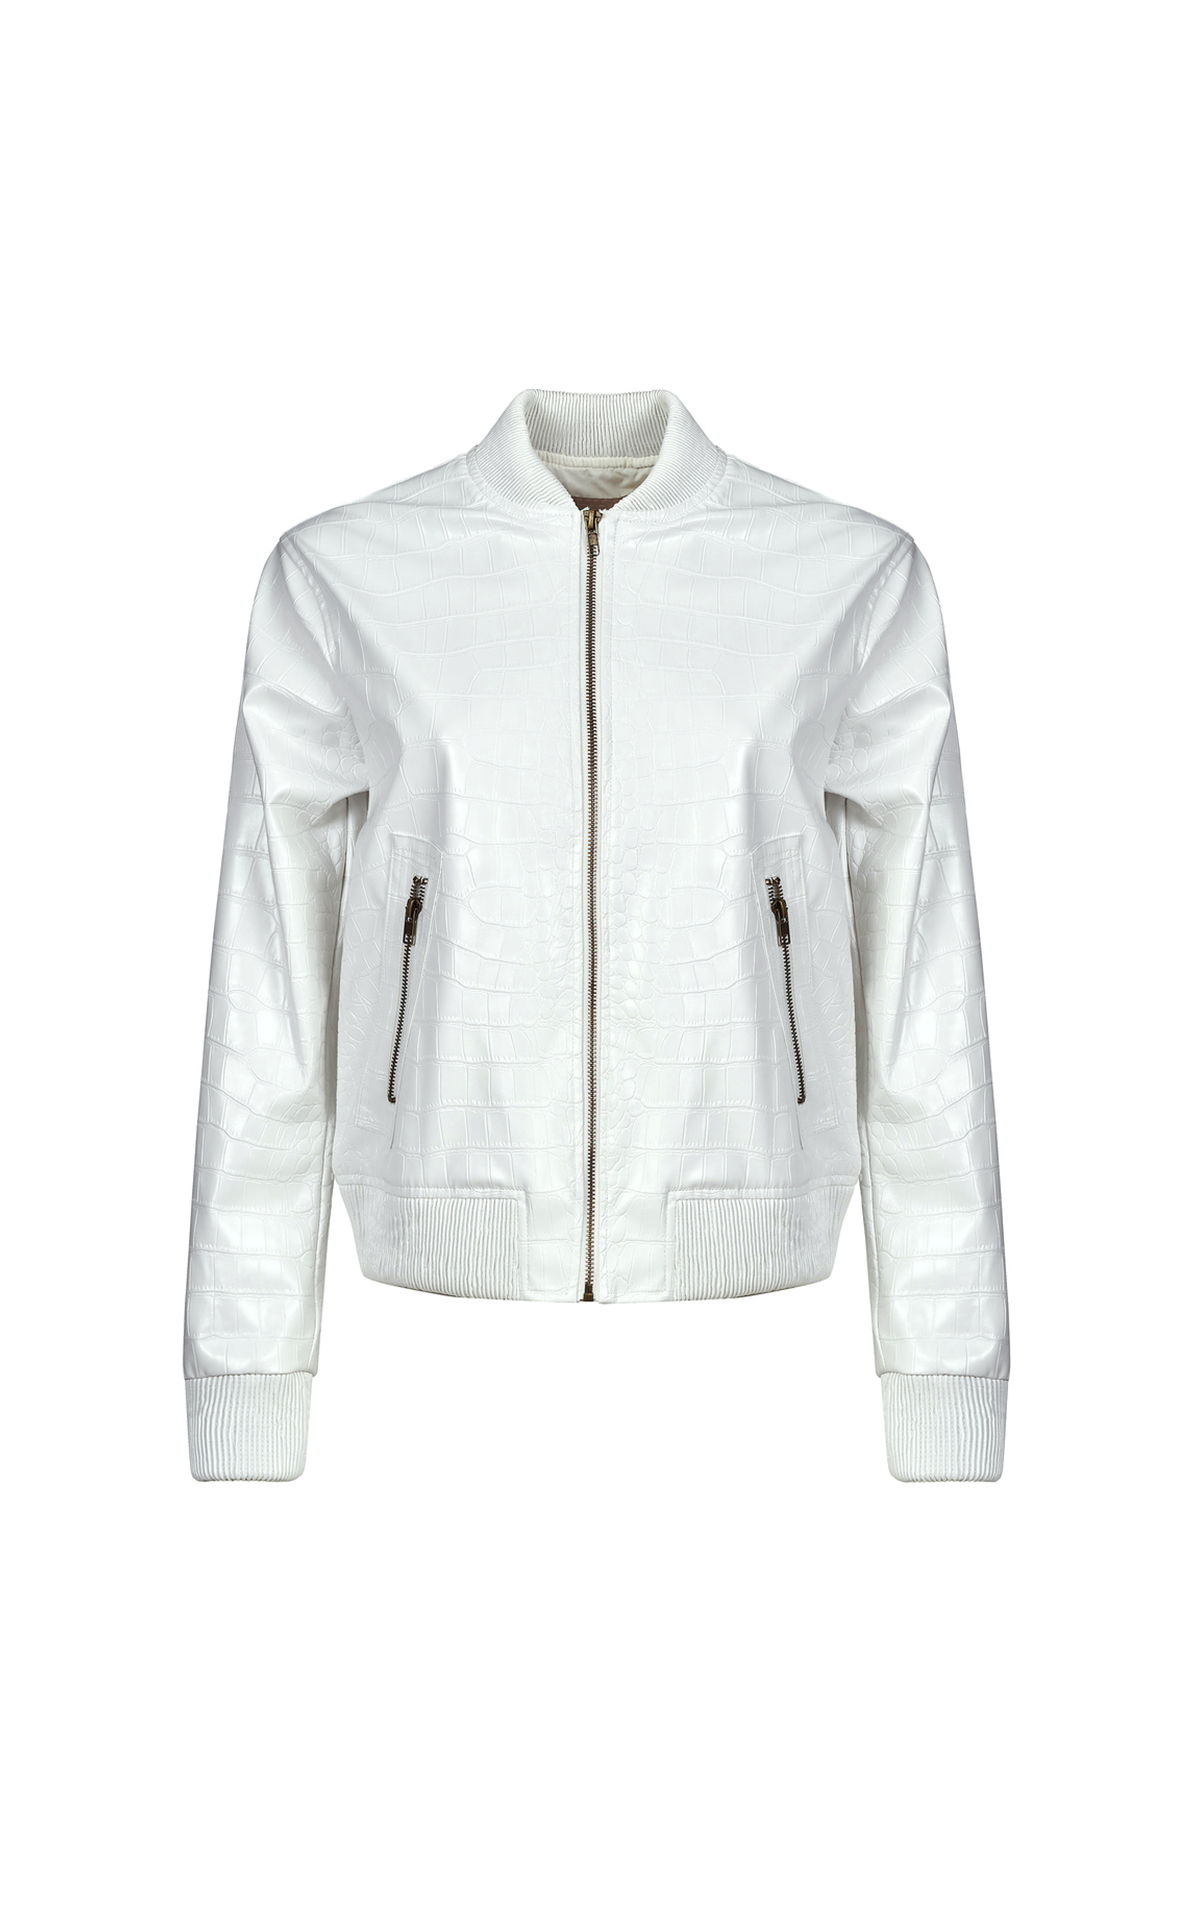 White croc effect jacket TWINSET